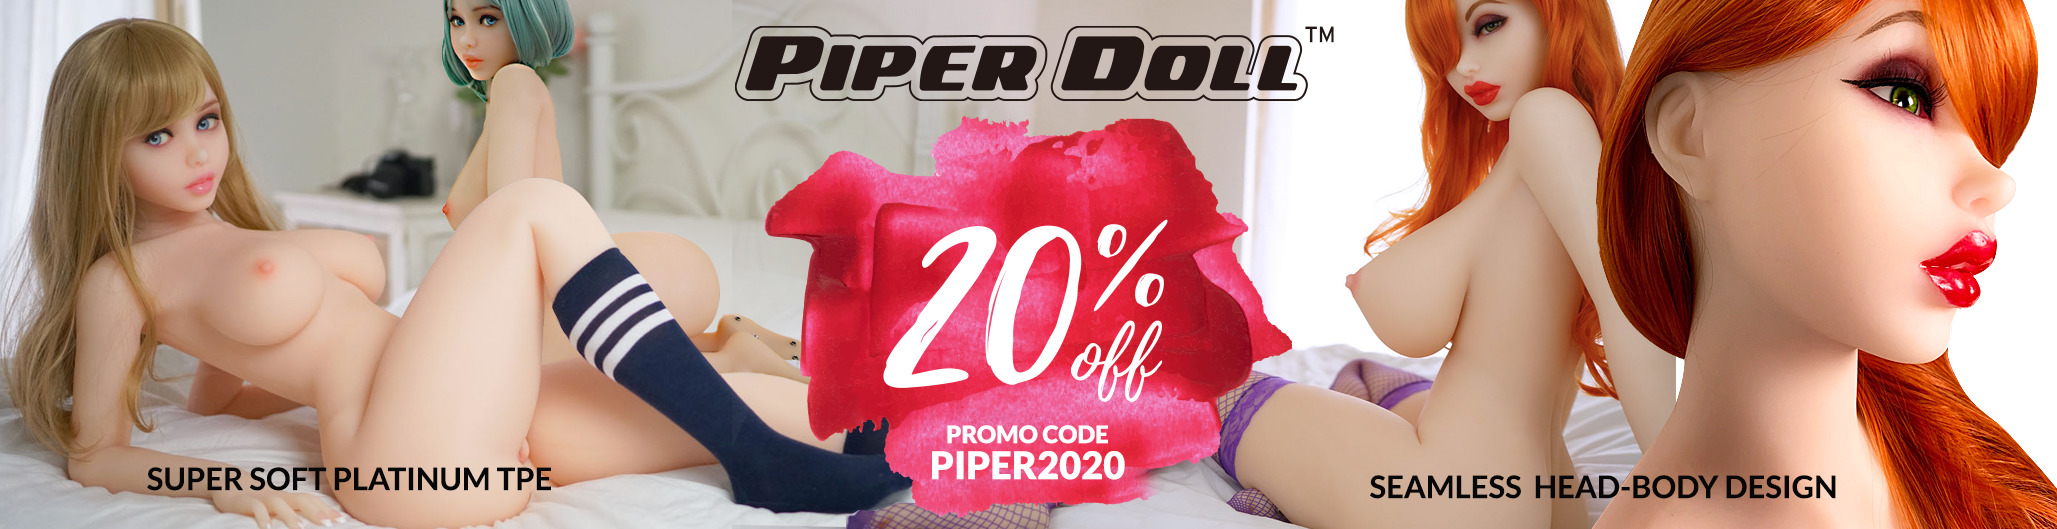 piperdoll20.png